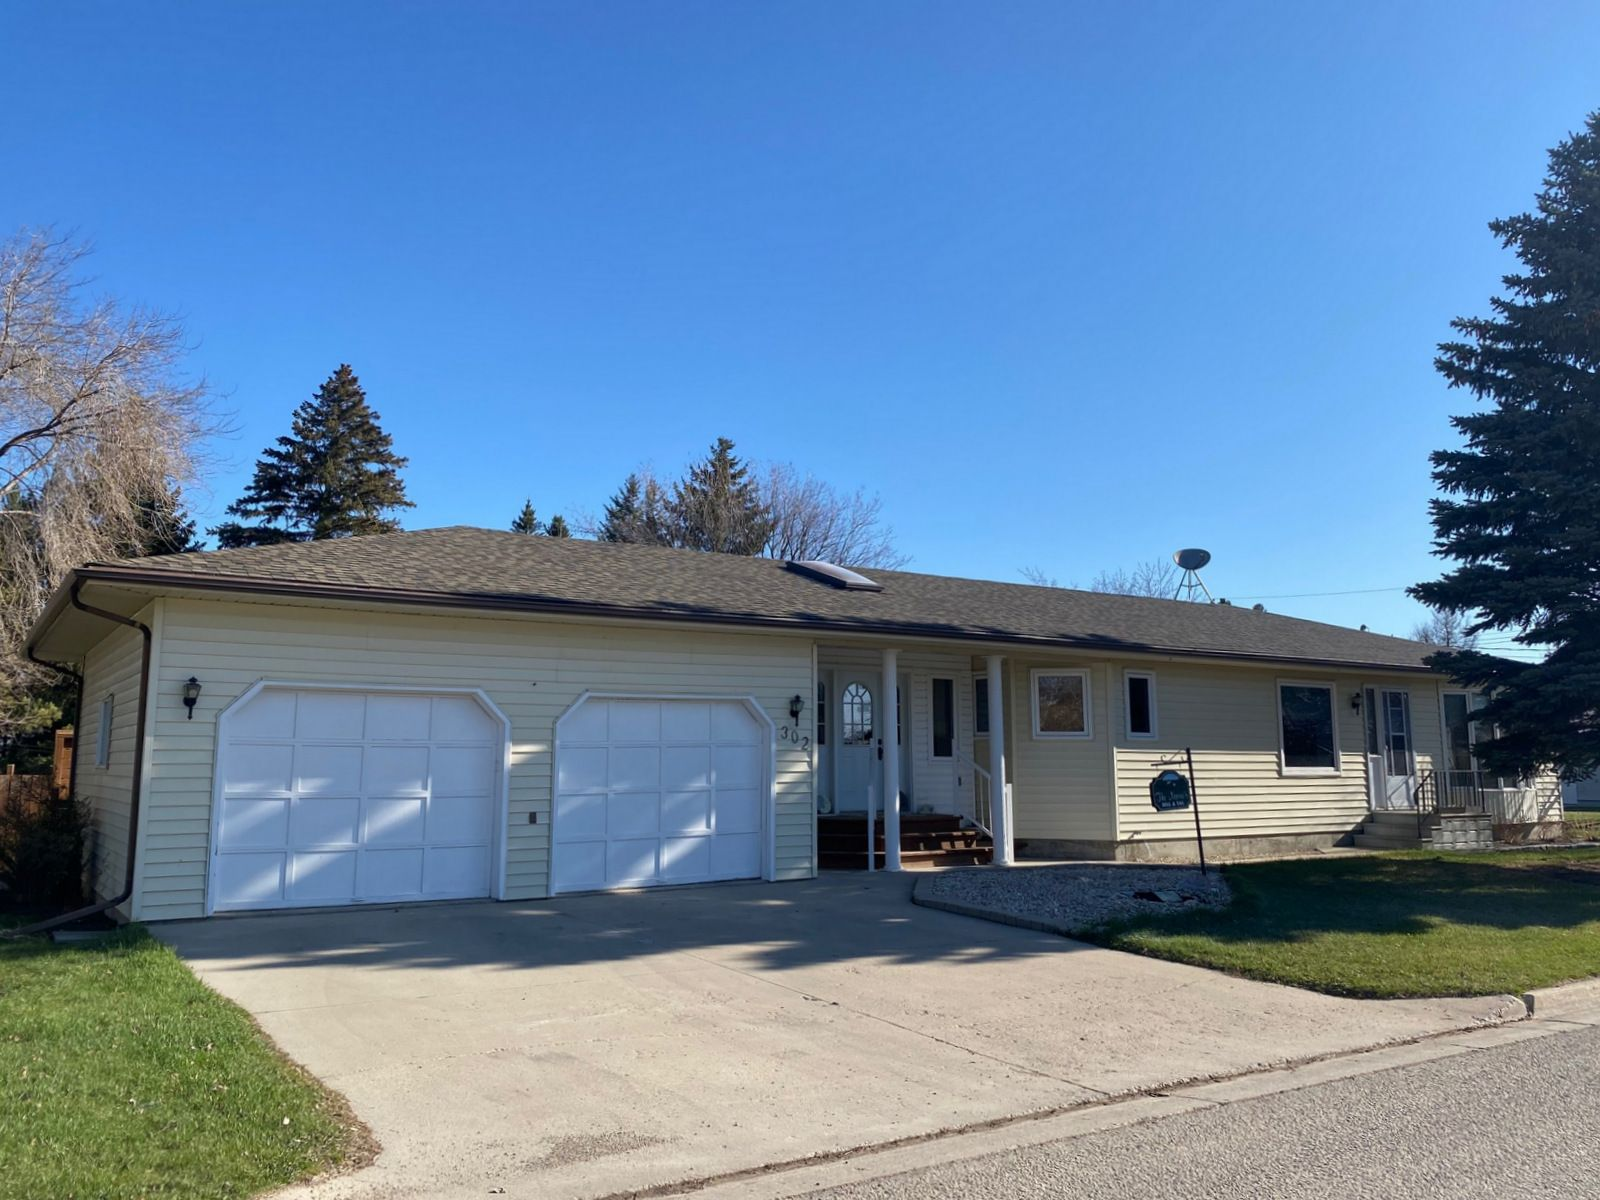 Main Photo: 302 Smith Street in Treherne: House for sale : MLS®# 202110581